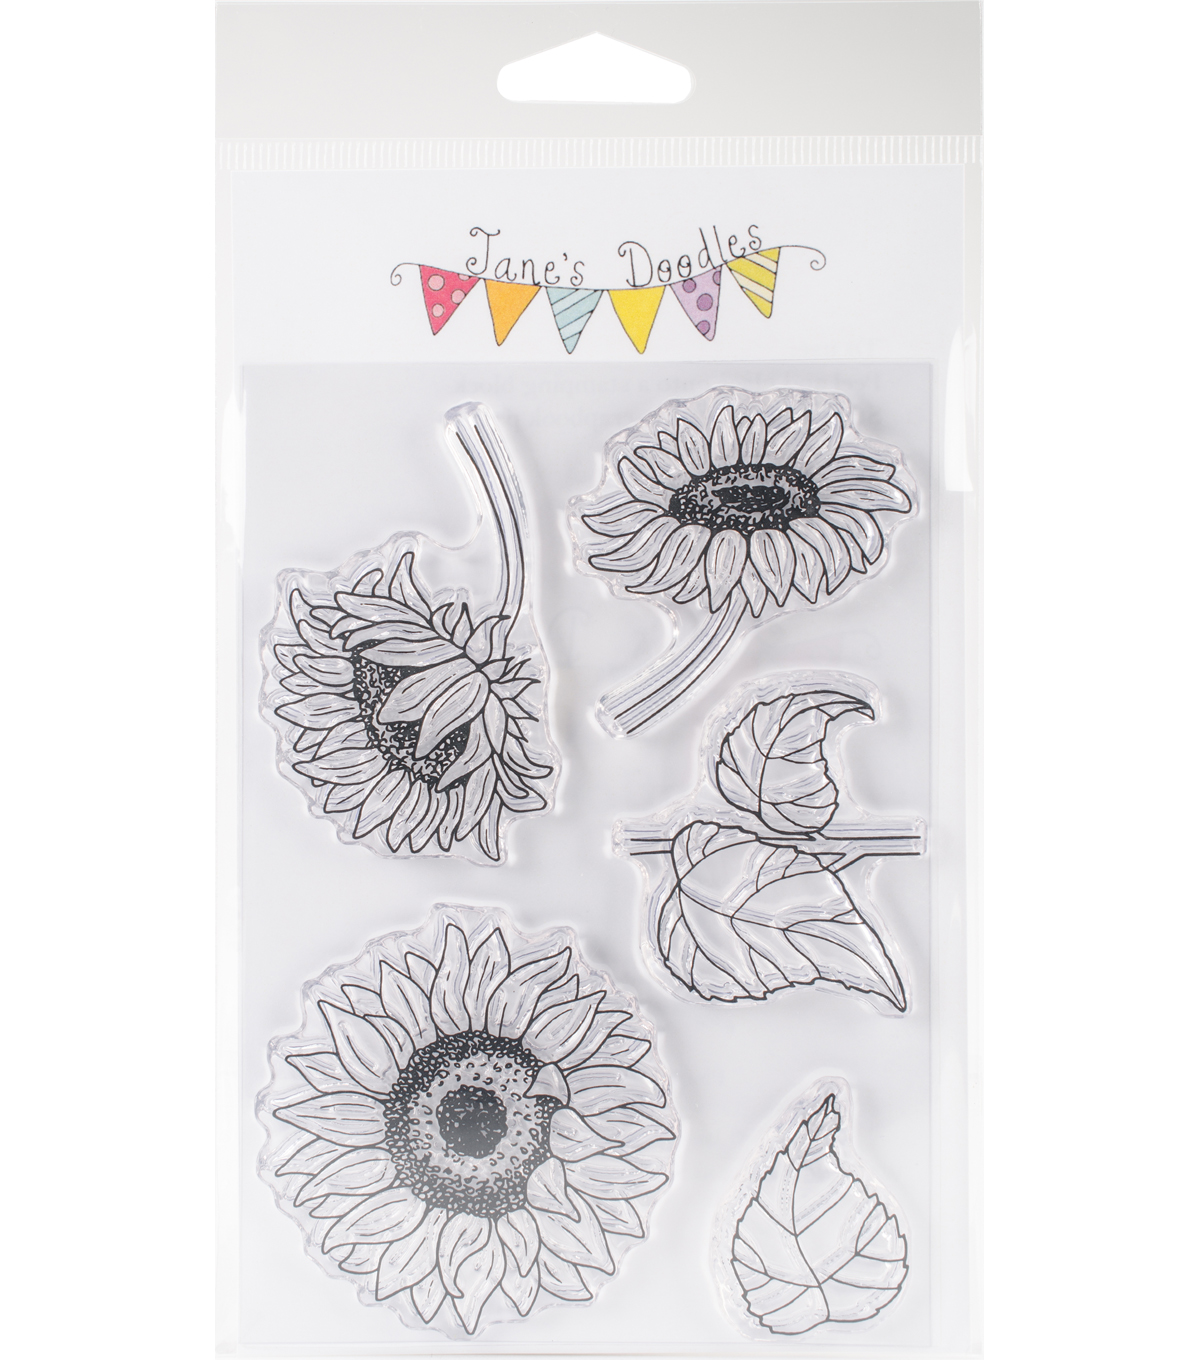 Jane\u0027s Doodles 5 pk Clear Stamps-Sunflowers